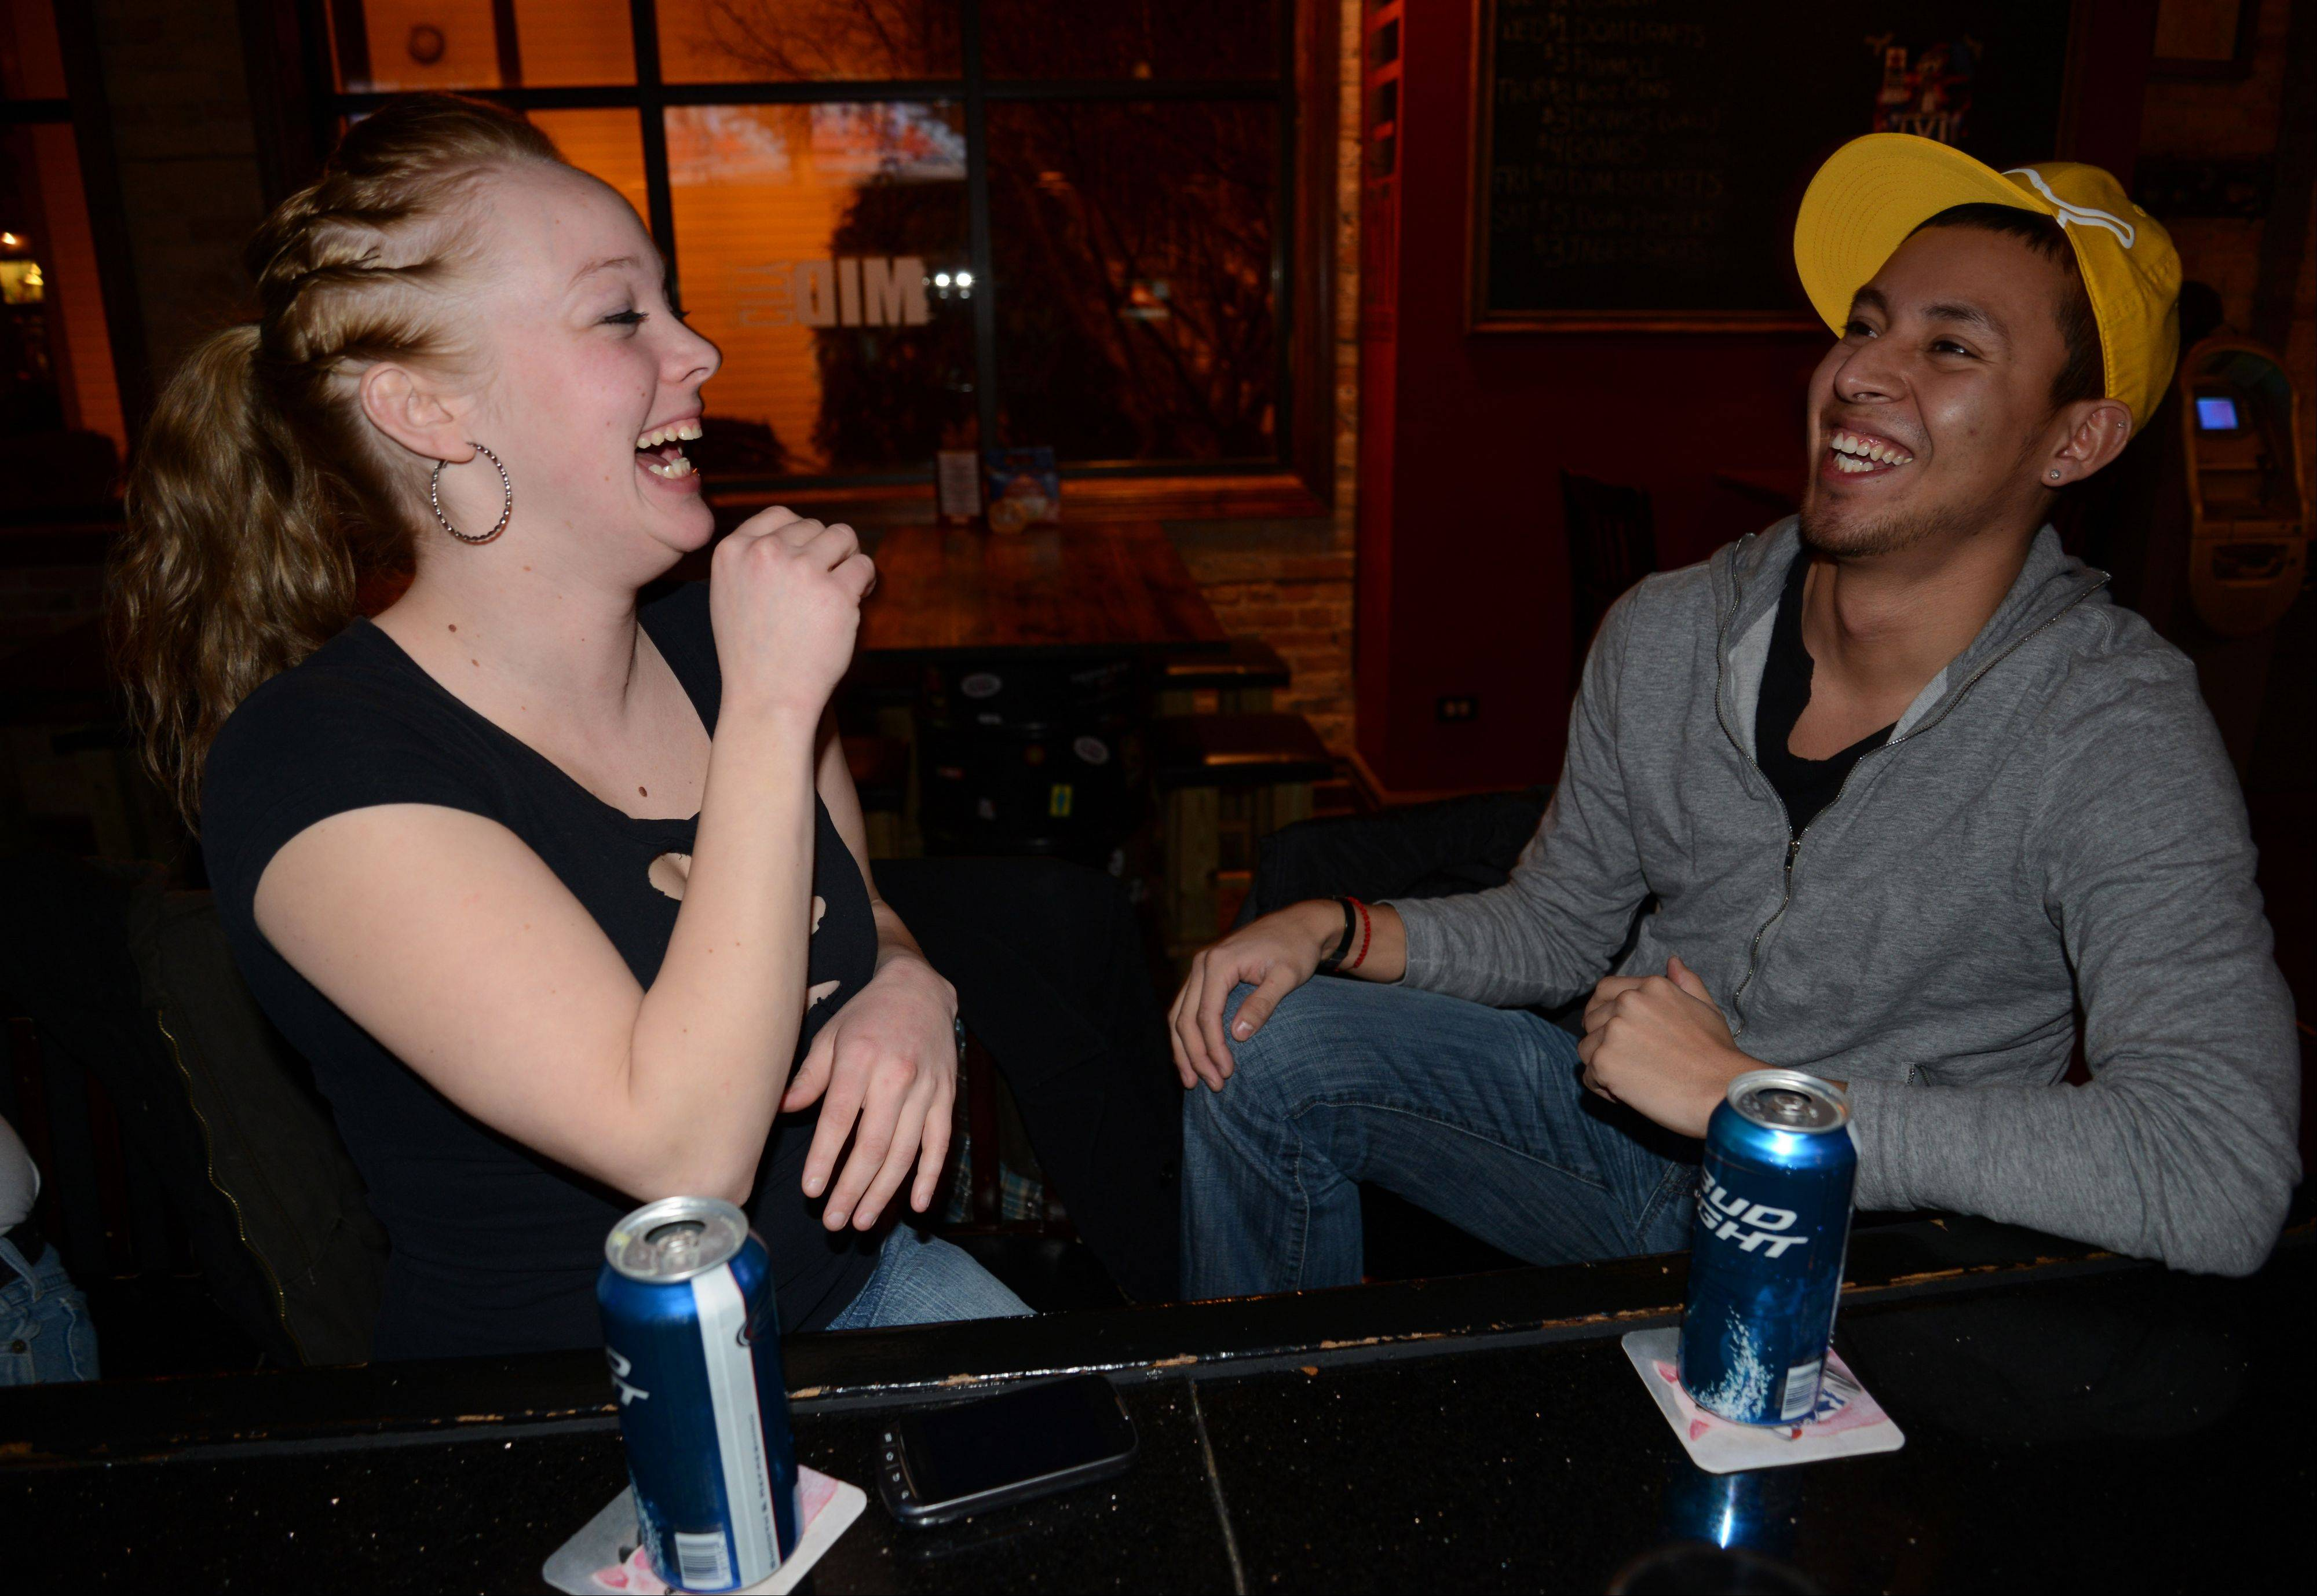 Samantha Burkhart and Erick Mariano both of West Chicago share a laugh at Midcity Cocktails & Supper Club.